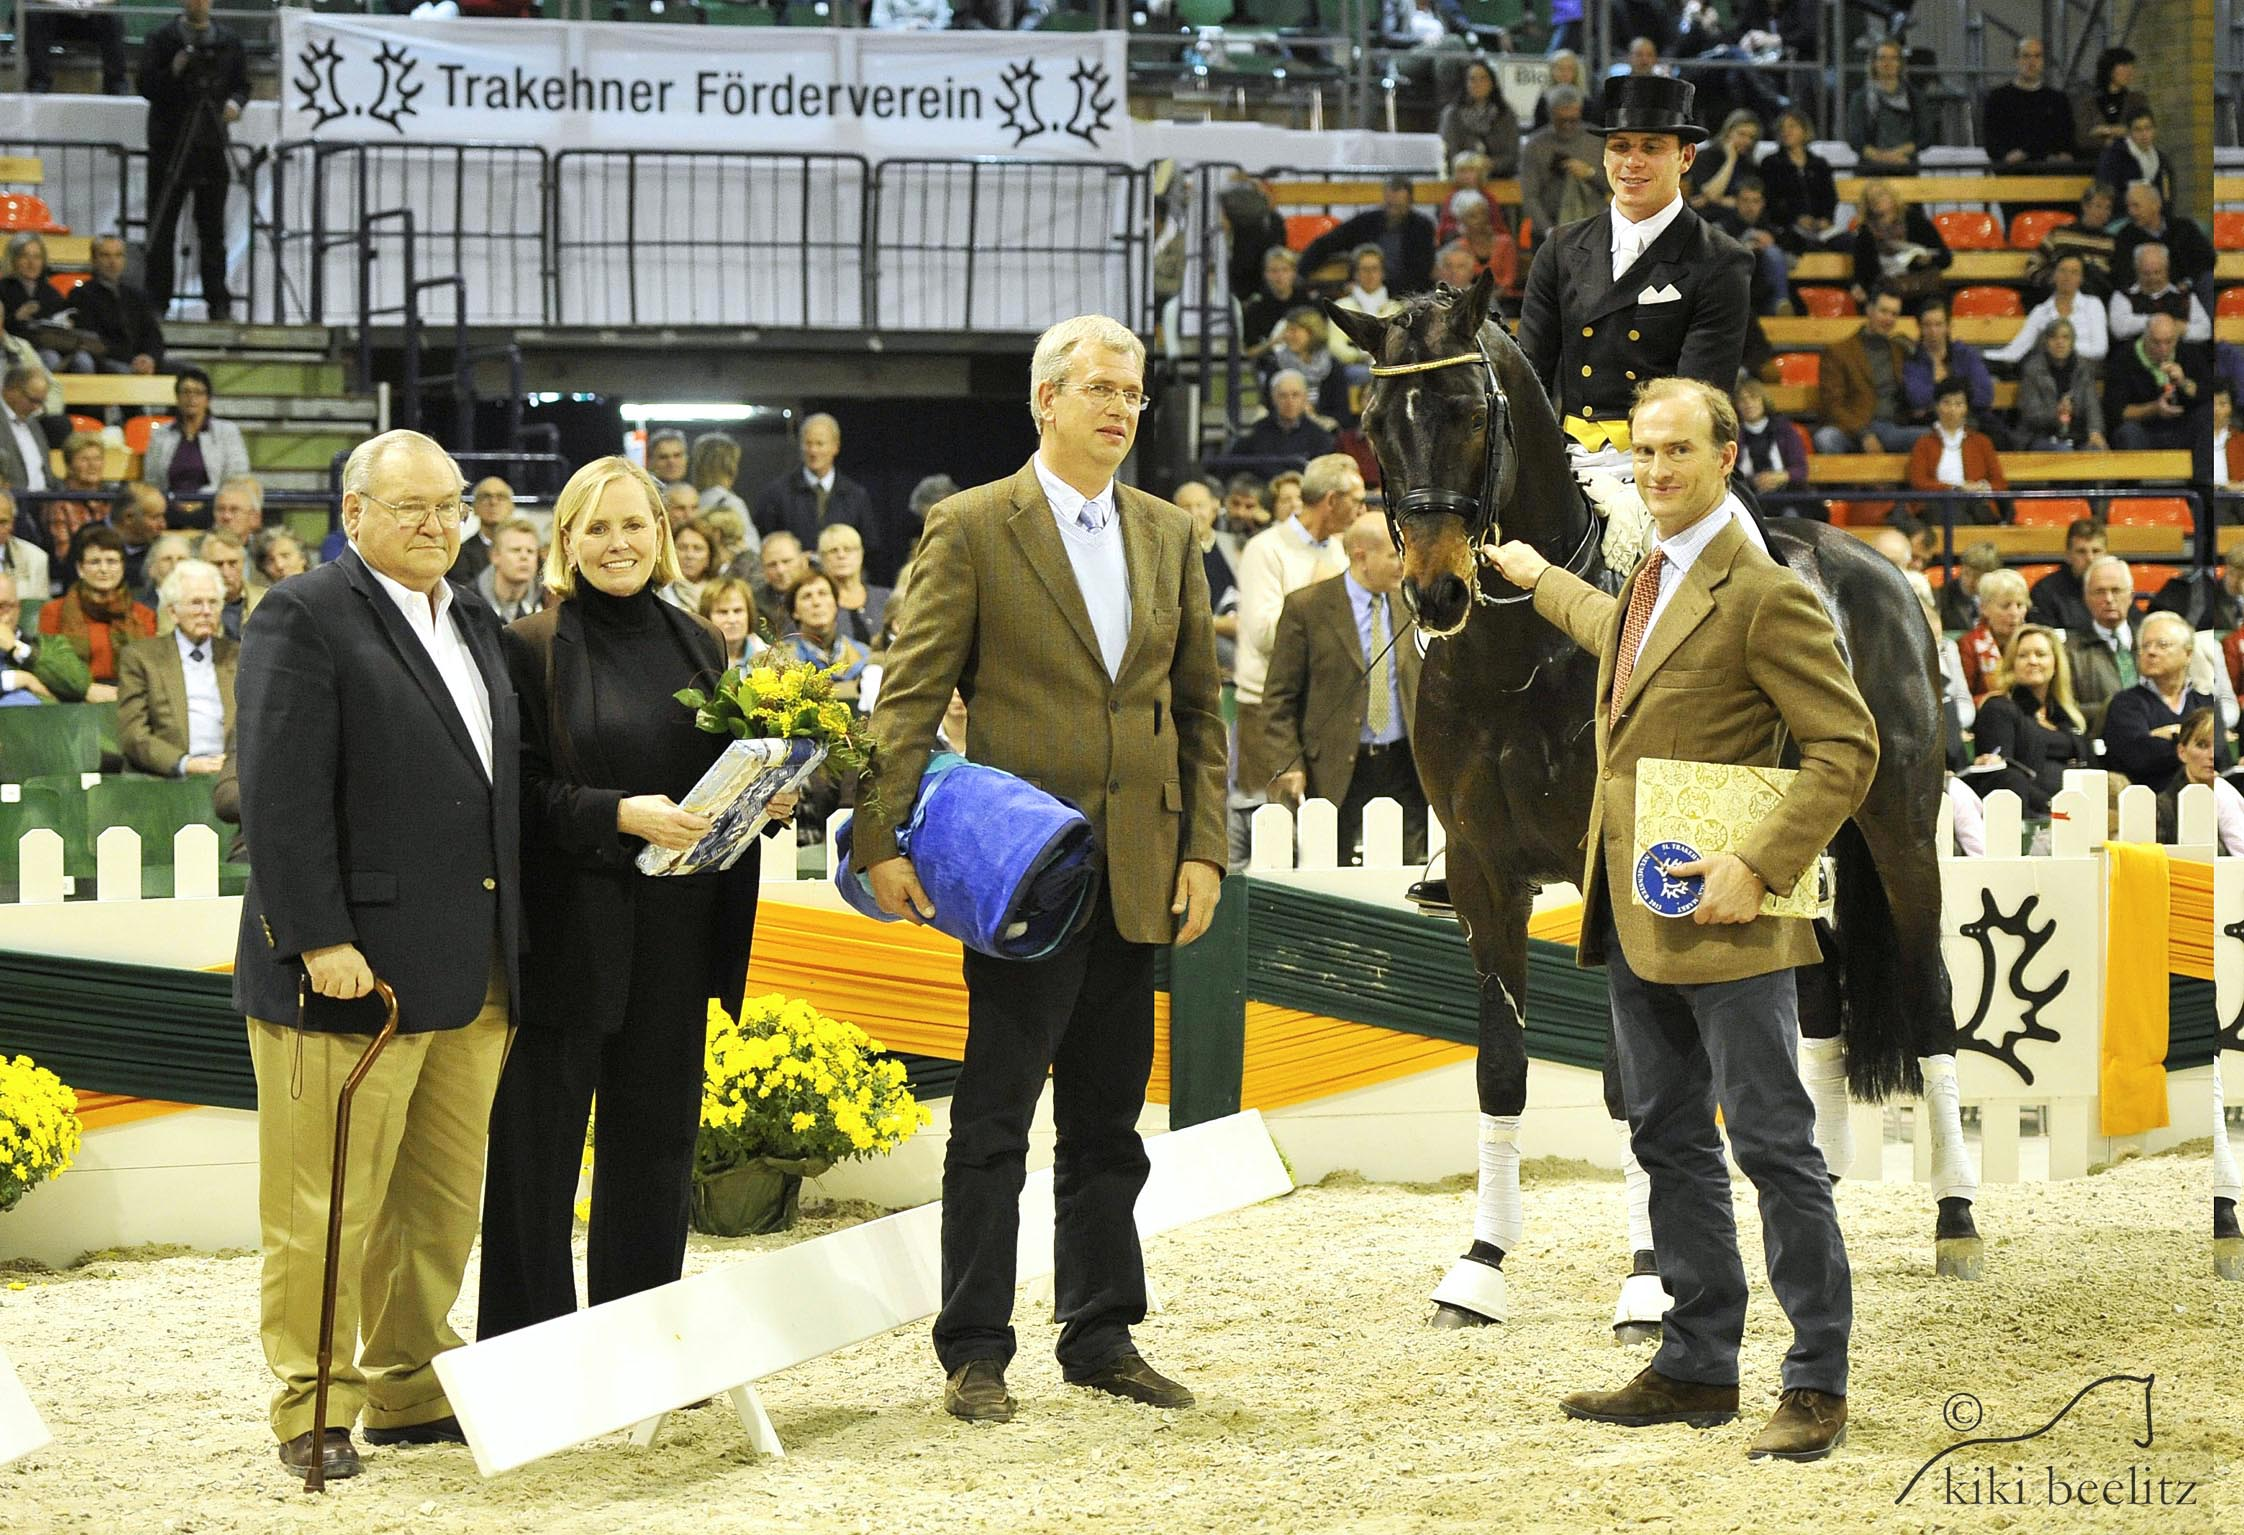 Herzensdieb, pictured with Doug and Louise Leatherdale, Jens Meyer and Prince Donatus Von Hessen, receives the Elite title from the Trakehner Verband. Photo by Kiki Beelitz.